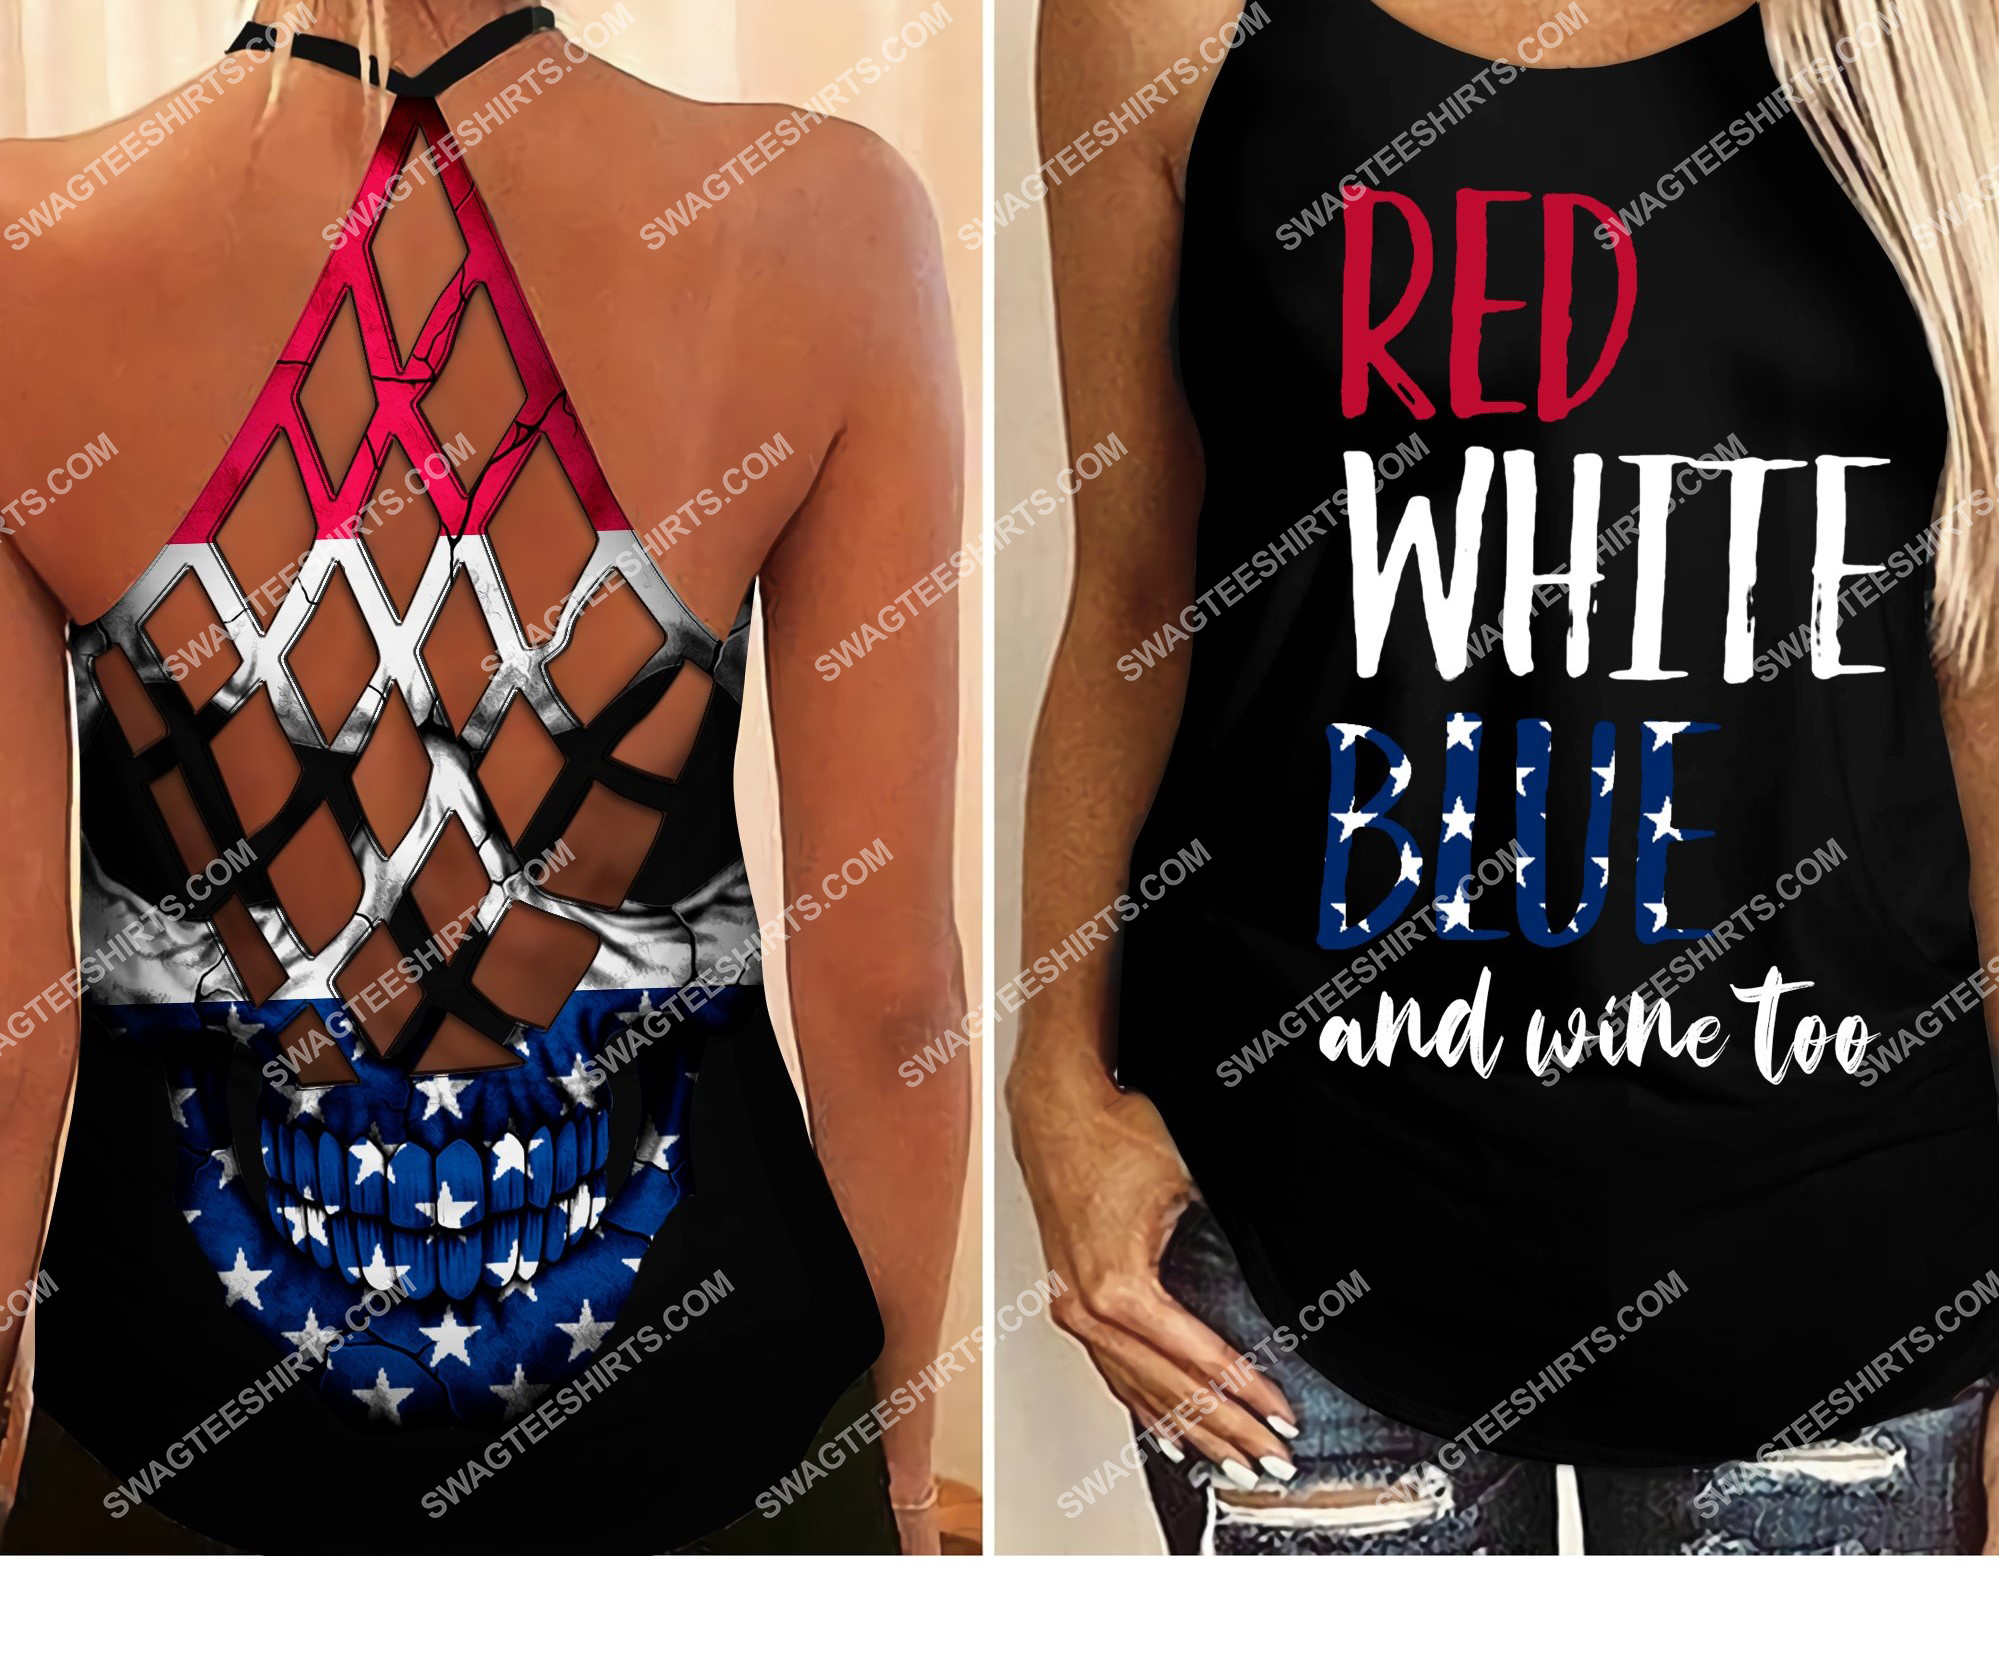 [Top-selling] fourth of july red white blue and wine too all over printed strappy back tank top - maria